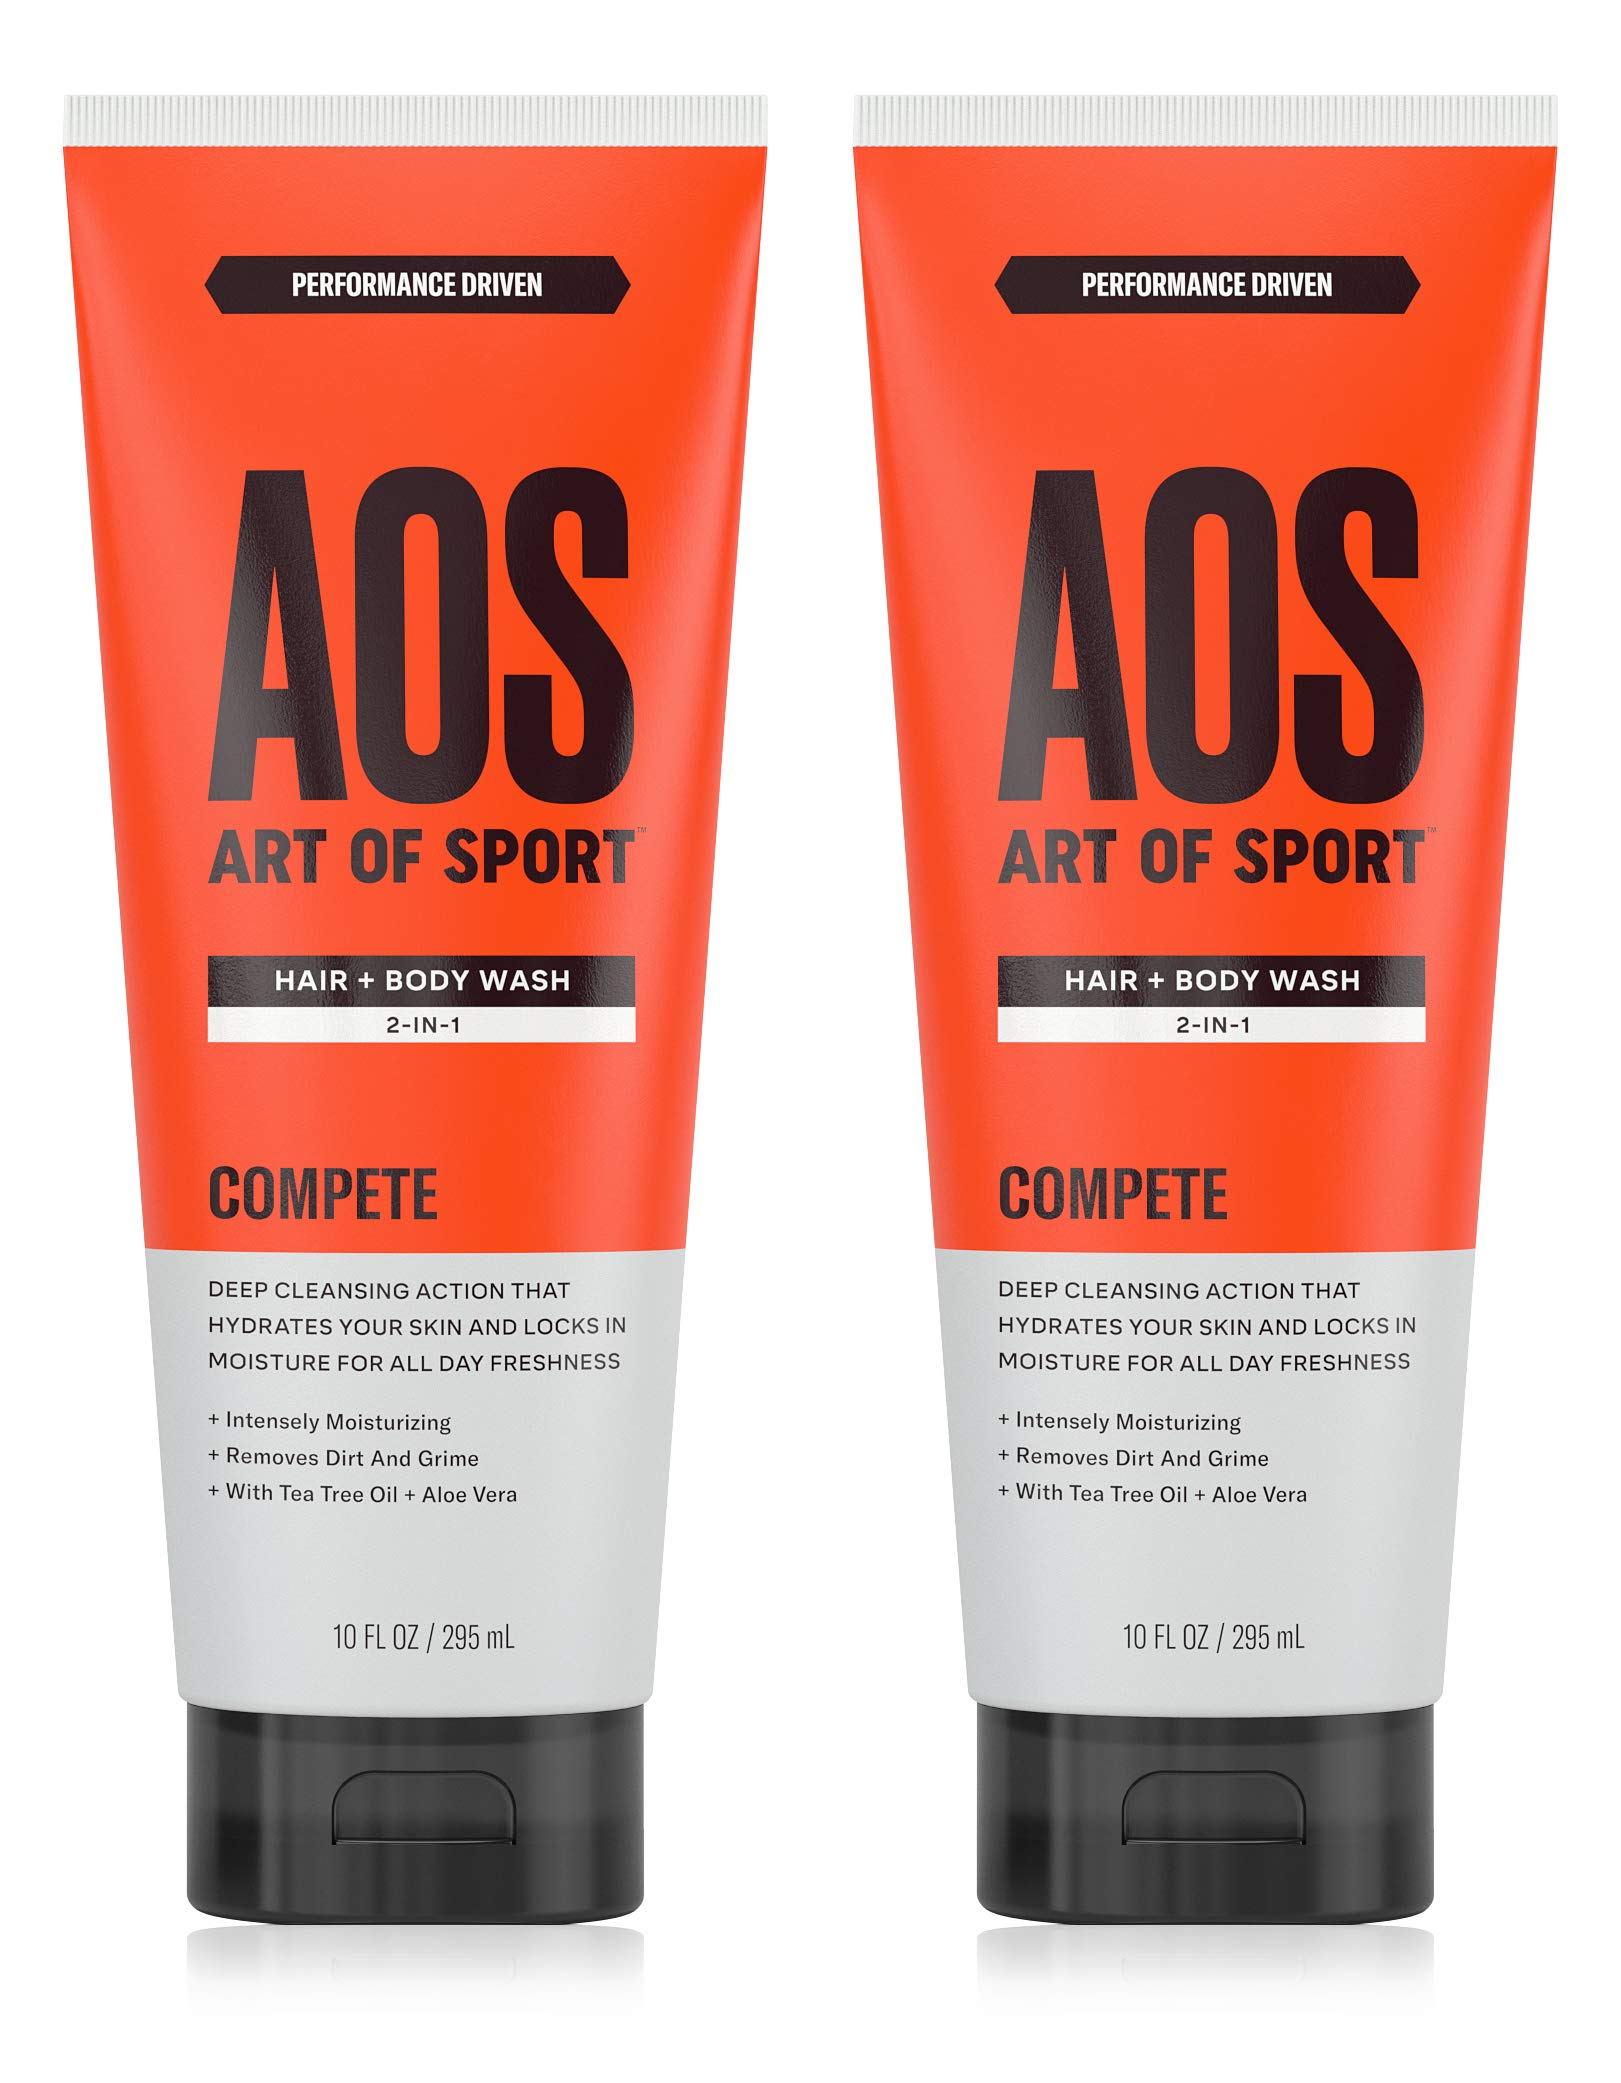 Art of Sport Men's Body Wash with Tea Tree Oil and Aloe Vera (2-pack), Compete Scent, Dermatologist-Tested, Paraben-Free, Hypoallergenic, Moisturizing Shower Gel